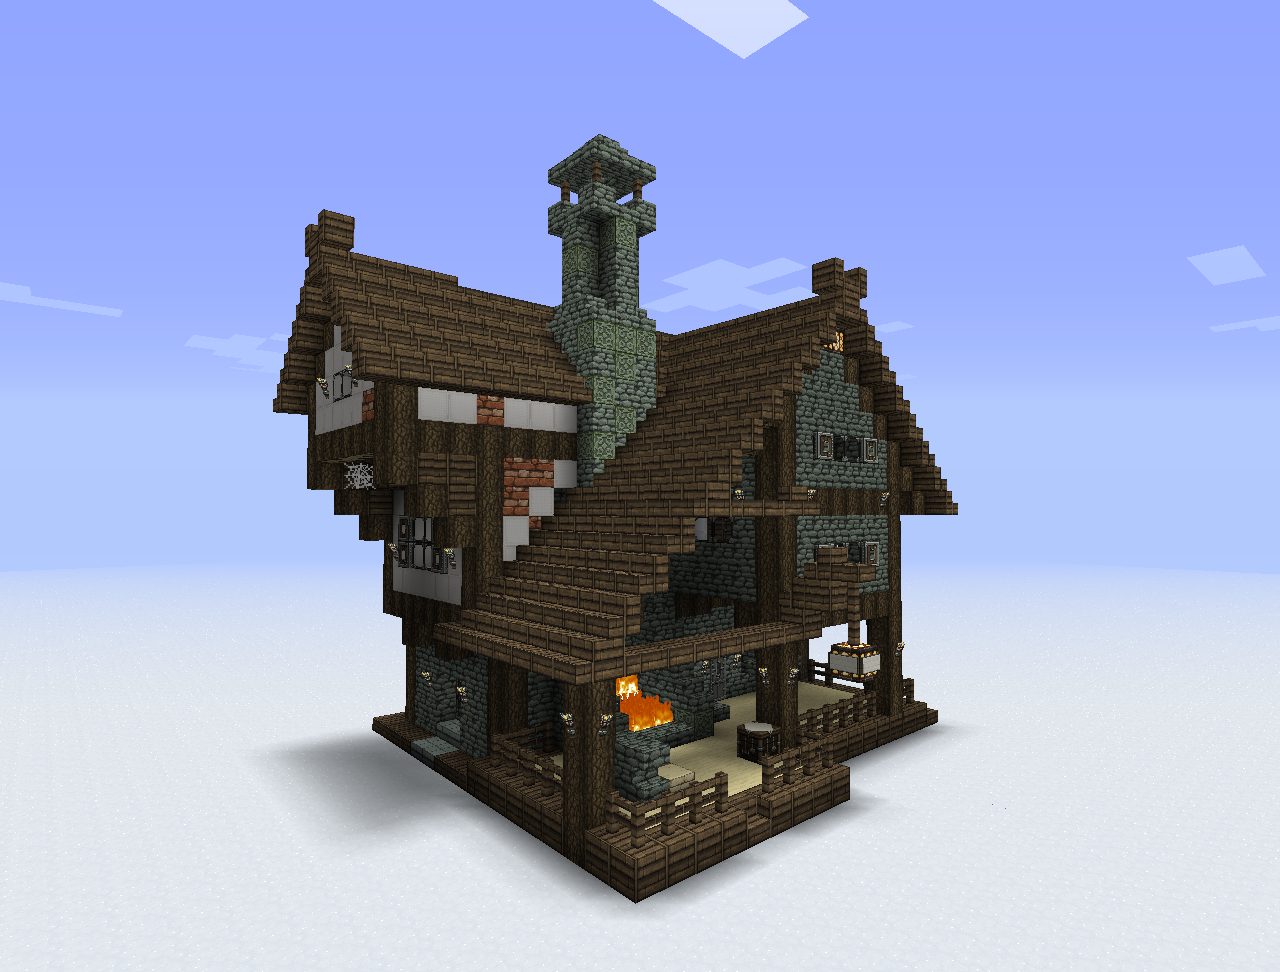 Maison Minecraft Png 4 Png Image